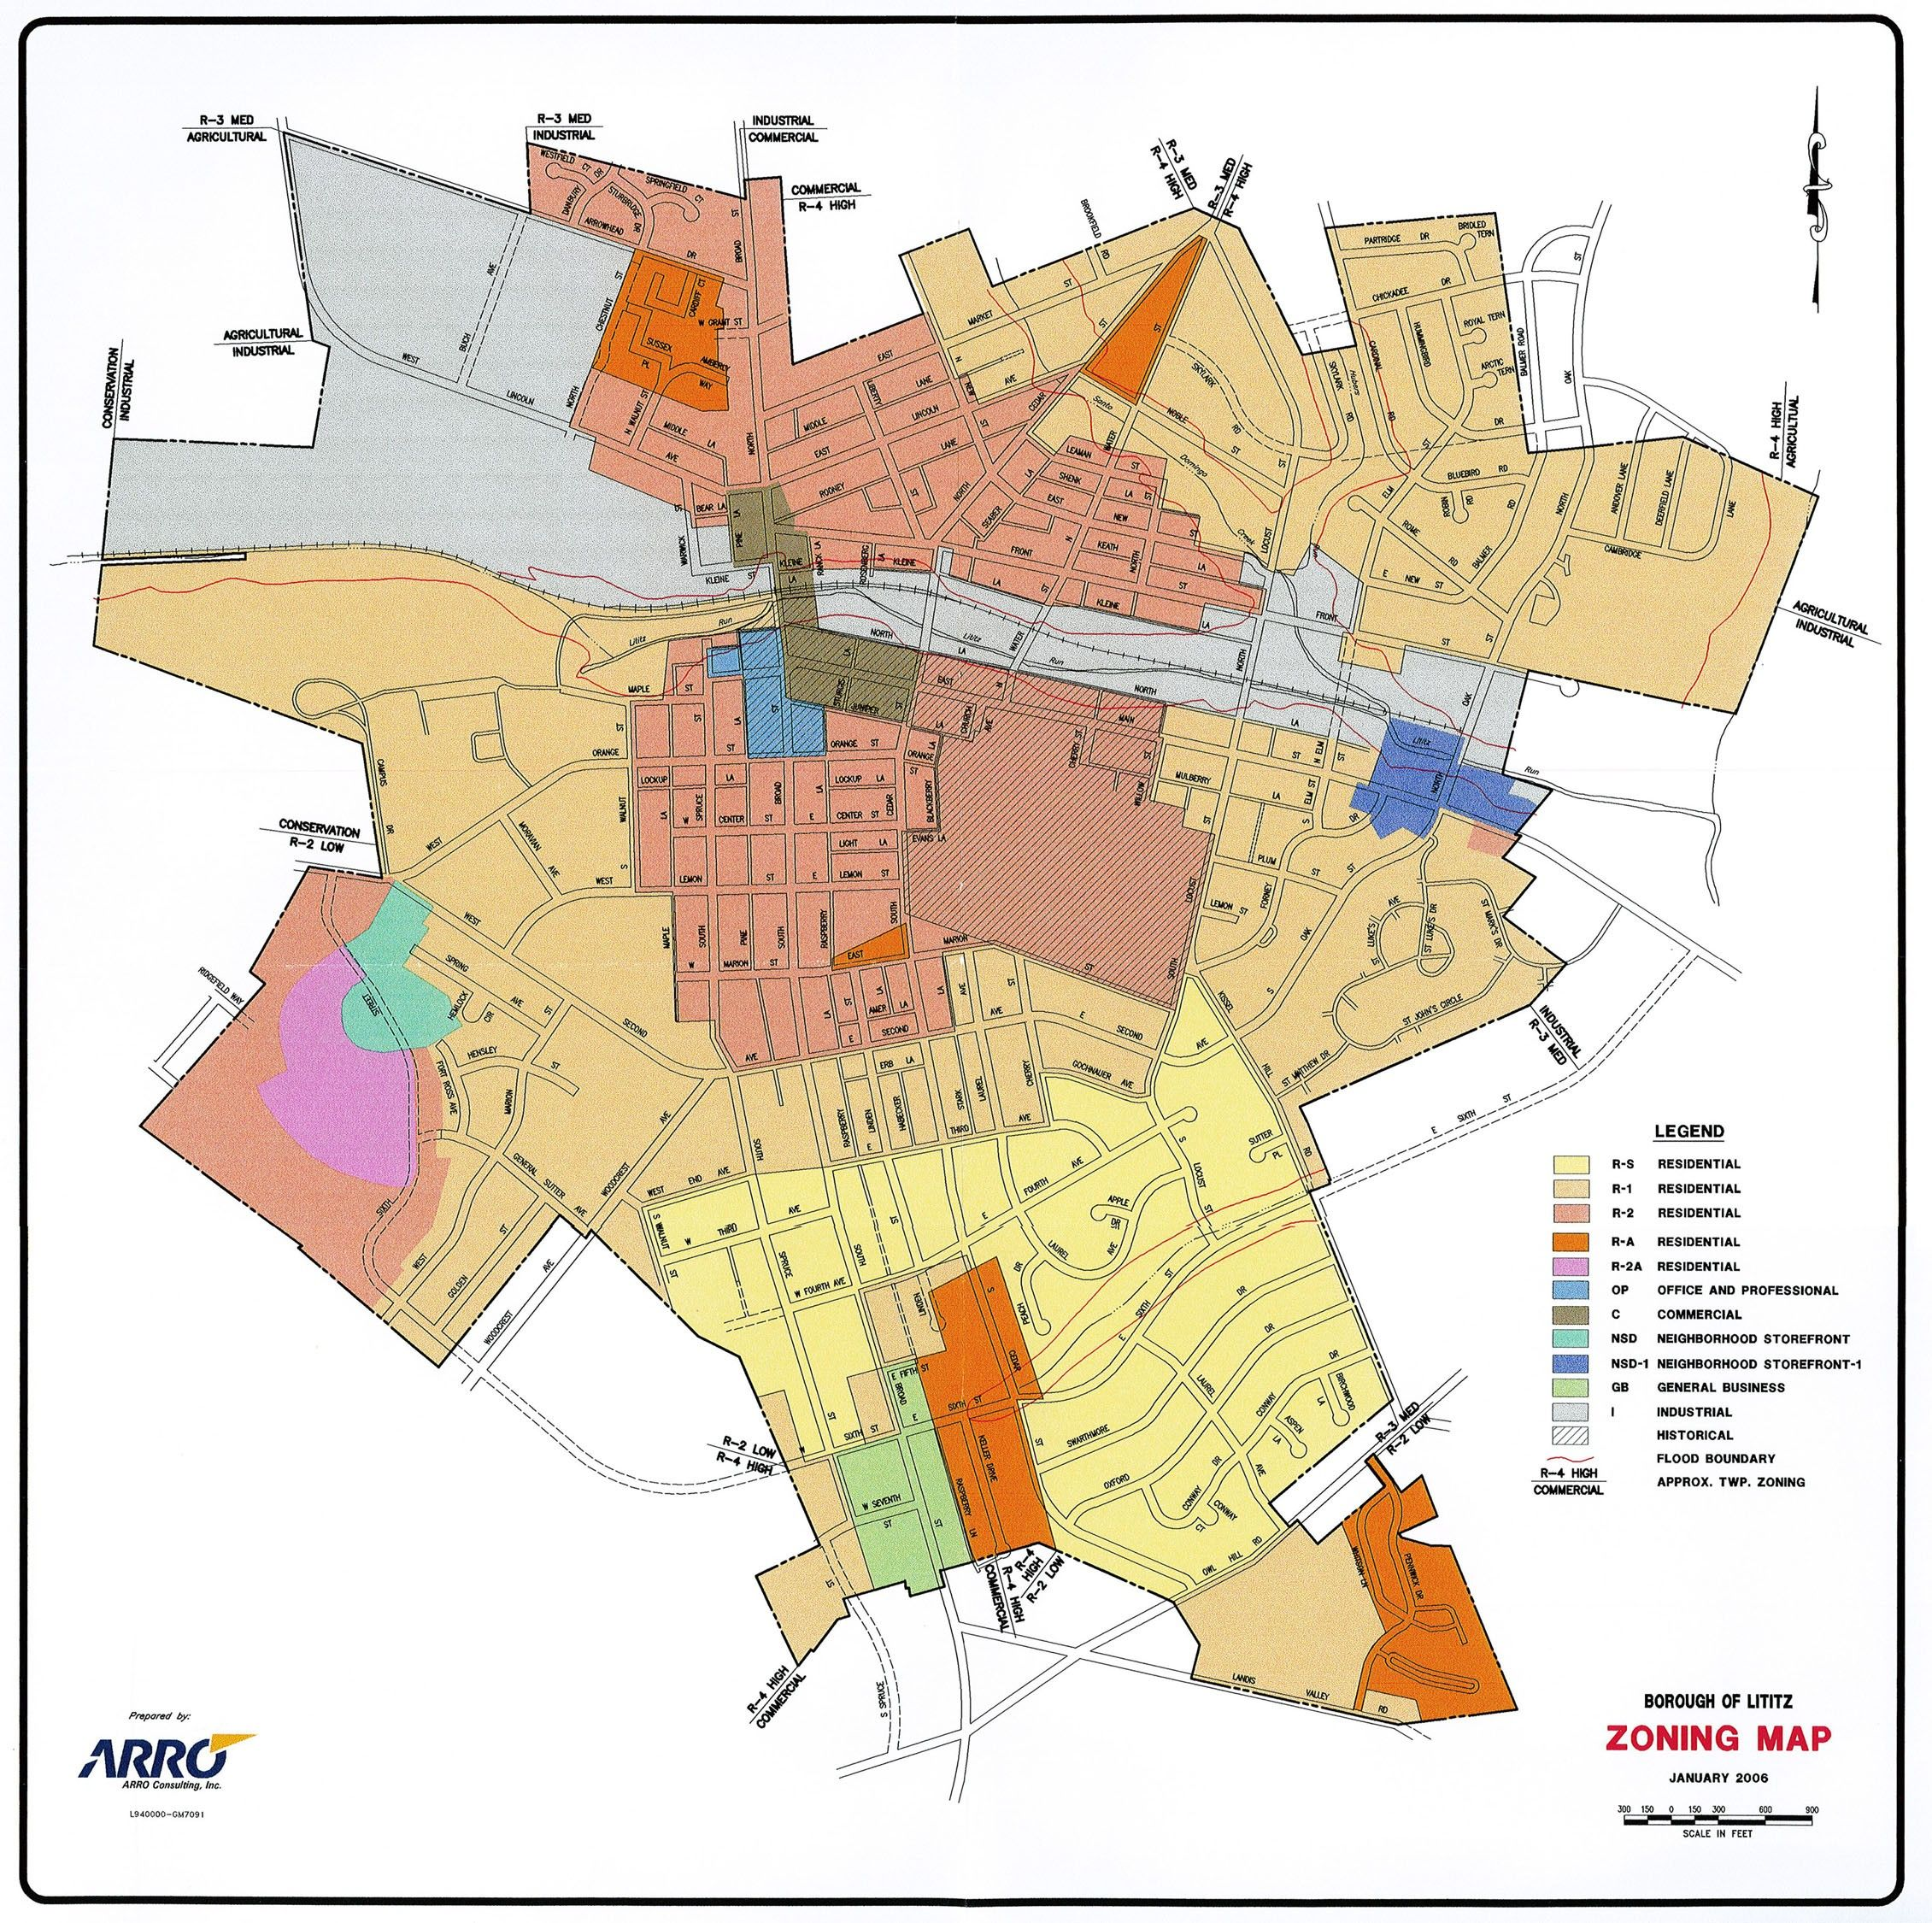 Site Map Example: This Image Shows A Map Of Zoning In An Example City. Cities Are Zoned Into Different Districts